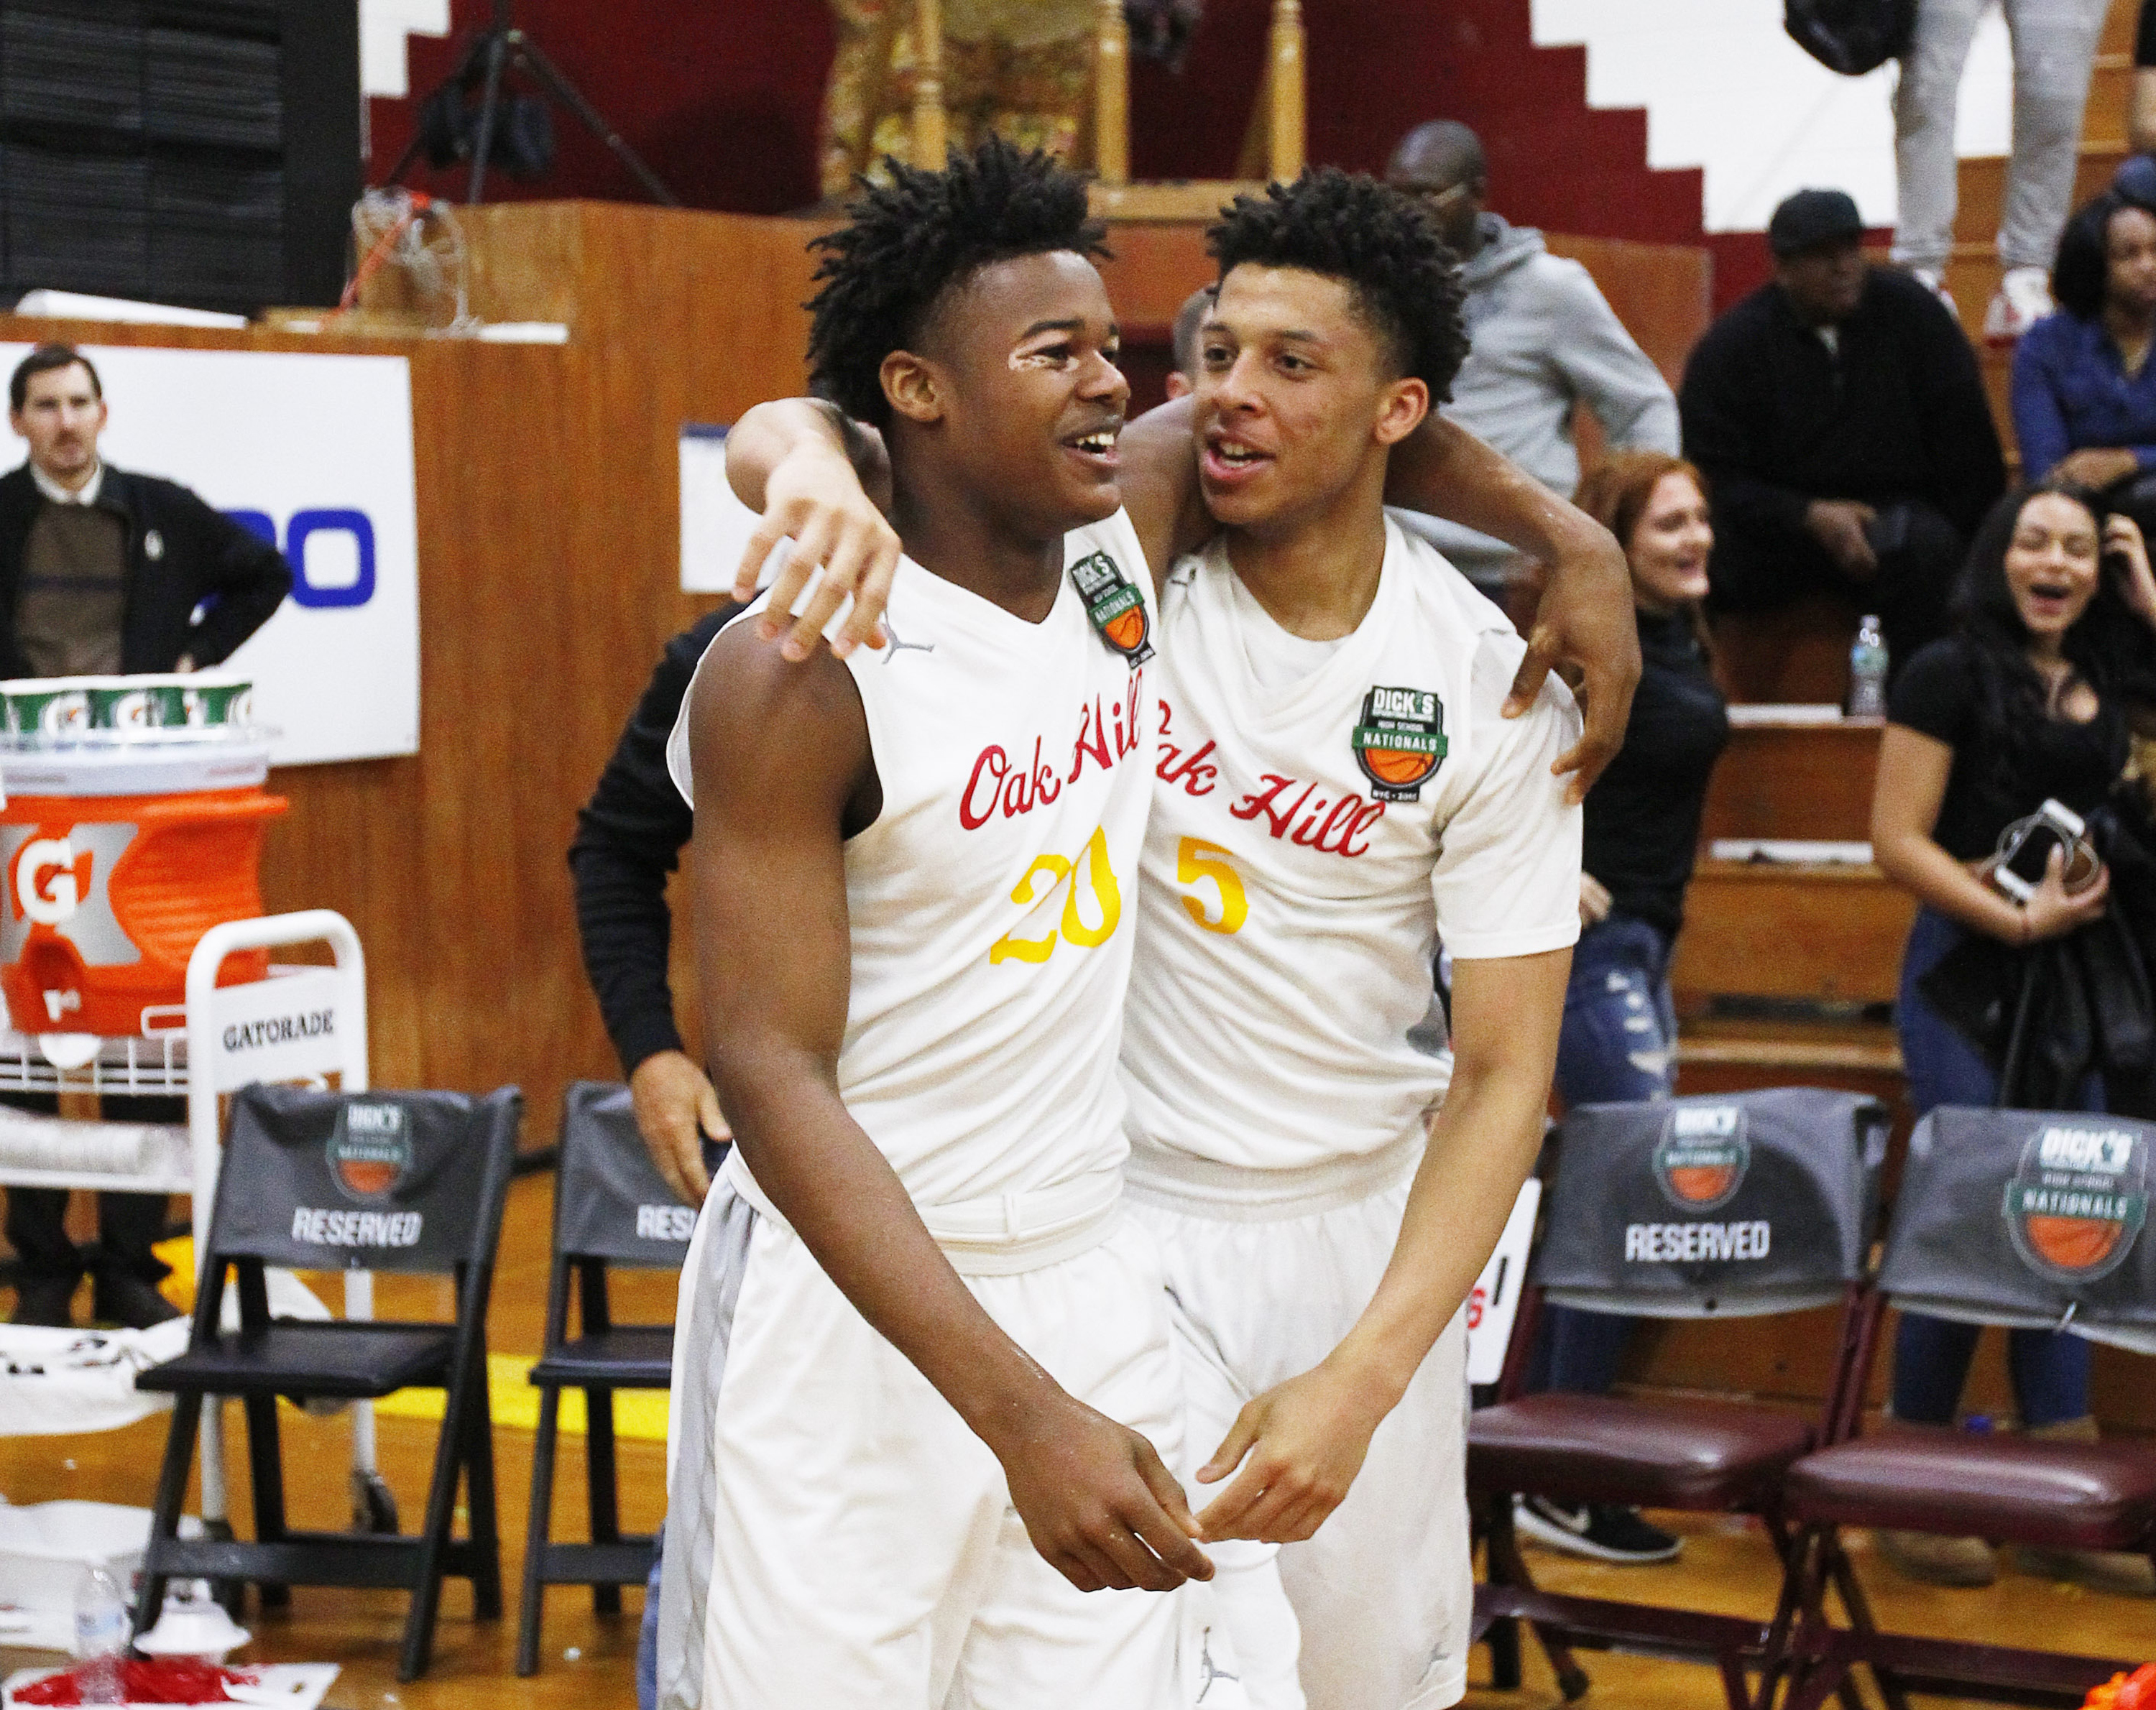 4/1/2016 1:00AM -- Middle Village, NY, U.S.A -- Oak Hill Academy guards Devonte Shuler (20) and Lindell Wigginton (5) react after defeating Miller Grove during Dick's Sporting Goods High School Nationals at Christ the King Regional high school. Oak Hill defeated Miller Grove 47-46.-- Photo by Andy Marlin USA TODAY Sports Images, Gannett ORG XMIT: US 134676 Dick's basketbal 4/1/2016 [Via MerlinFTP Drop]